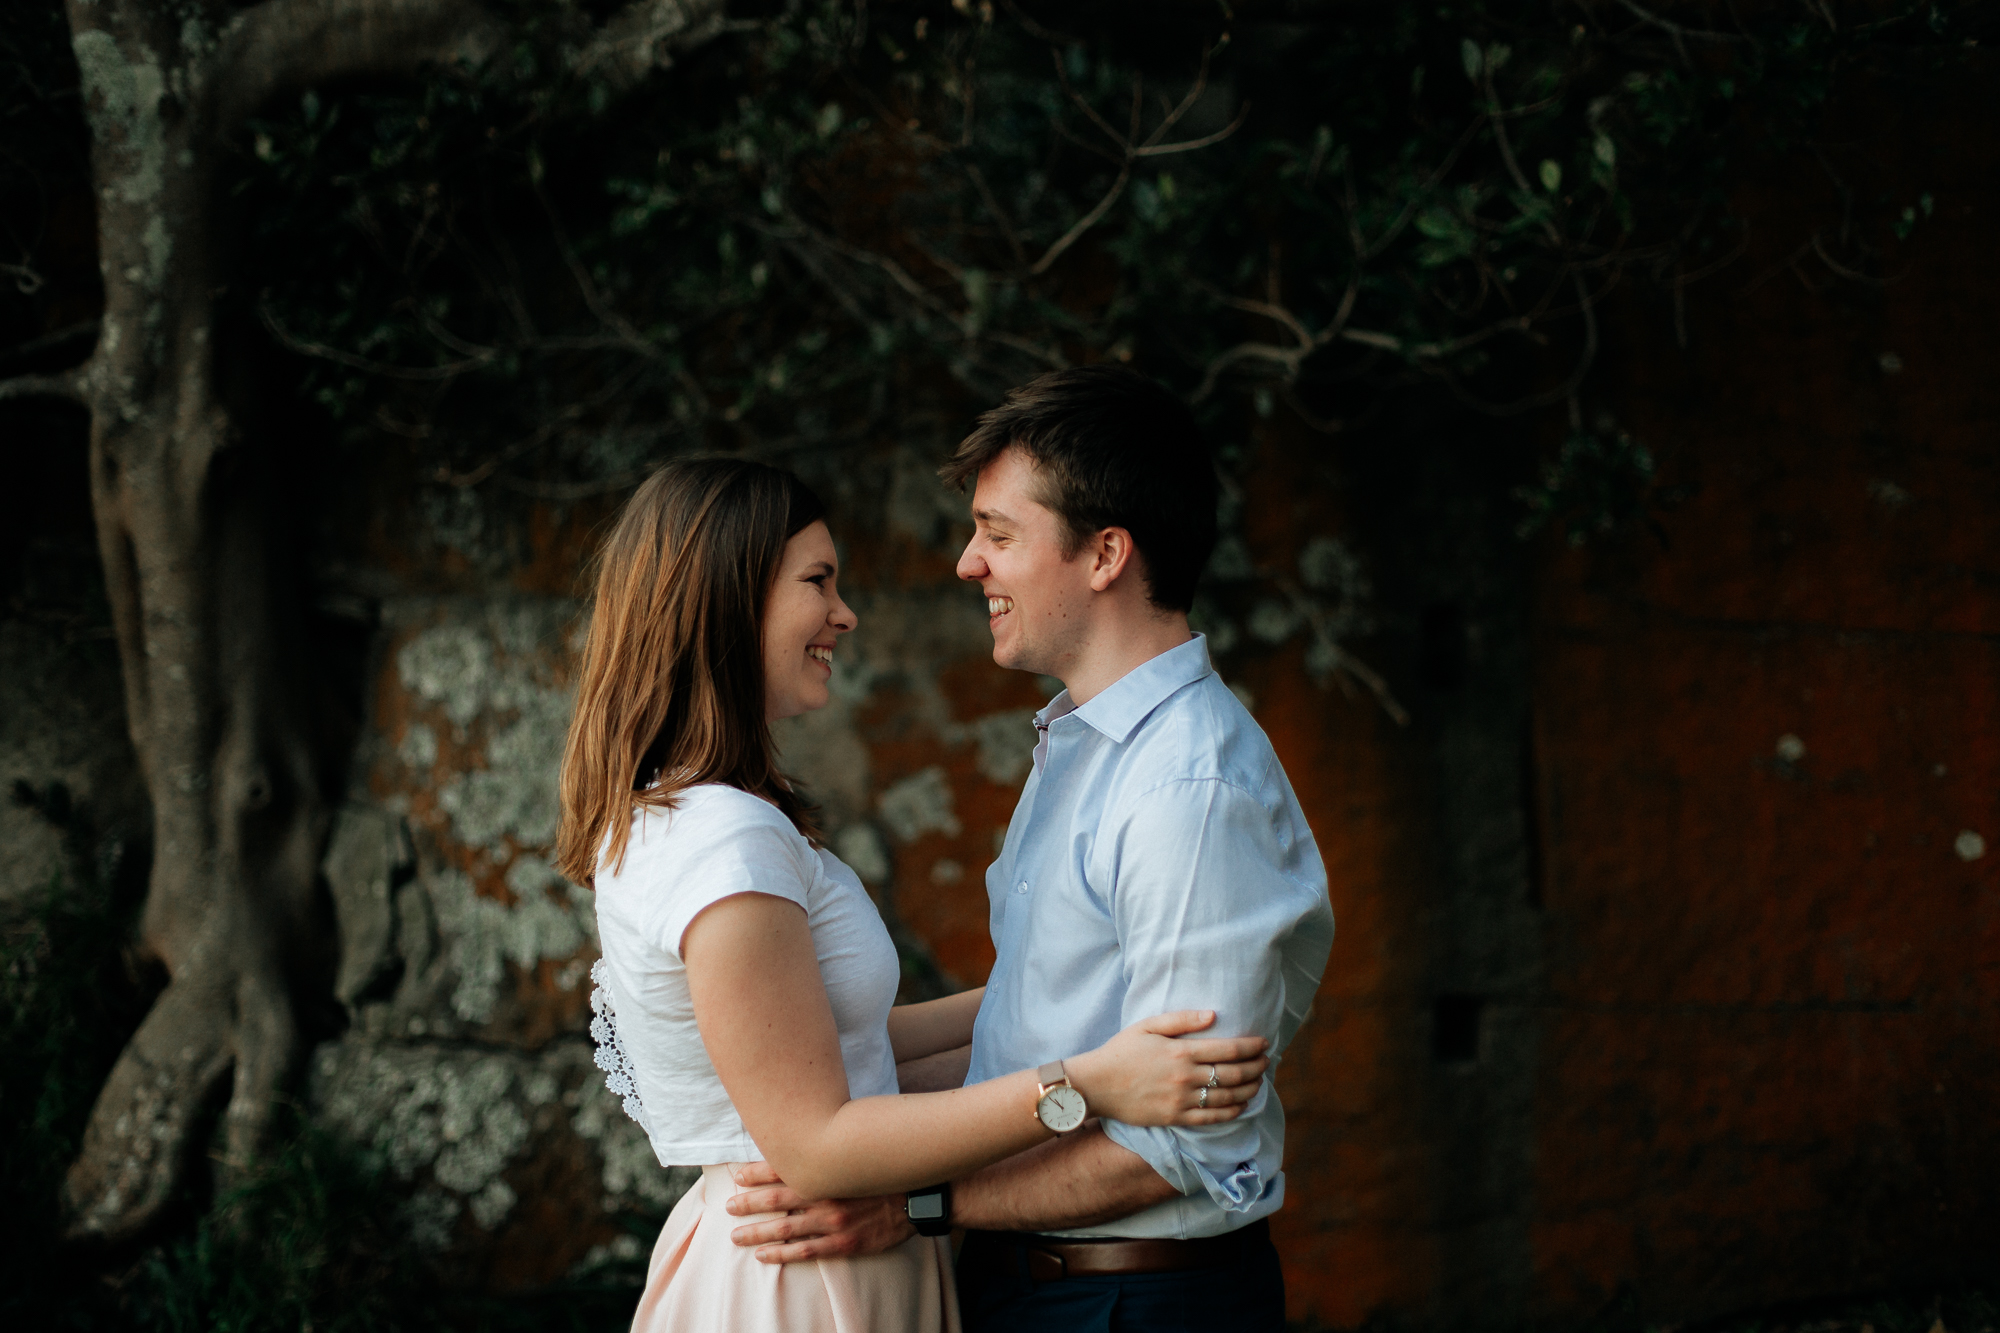 Amanzi and Steven_Engagement_Sydney_Holly Medway Photography-49.JPG